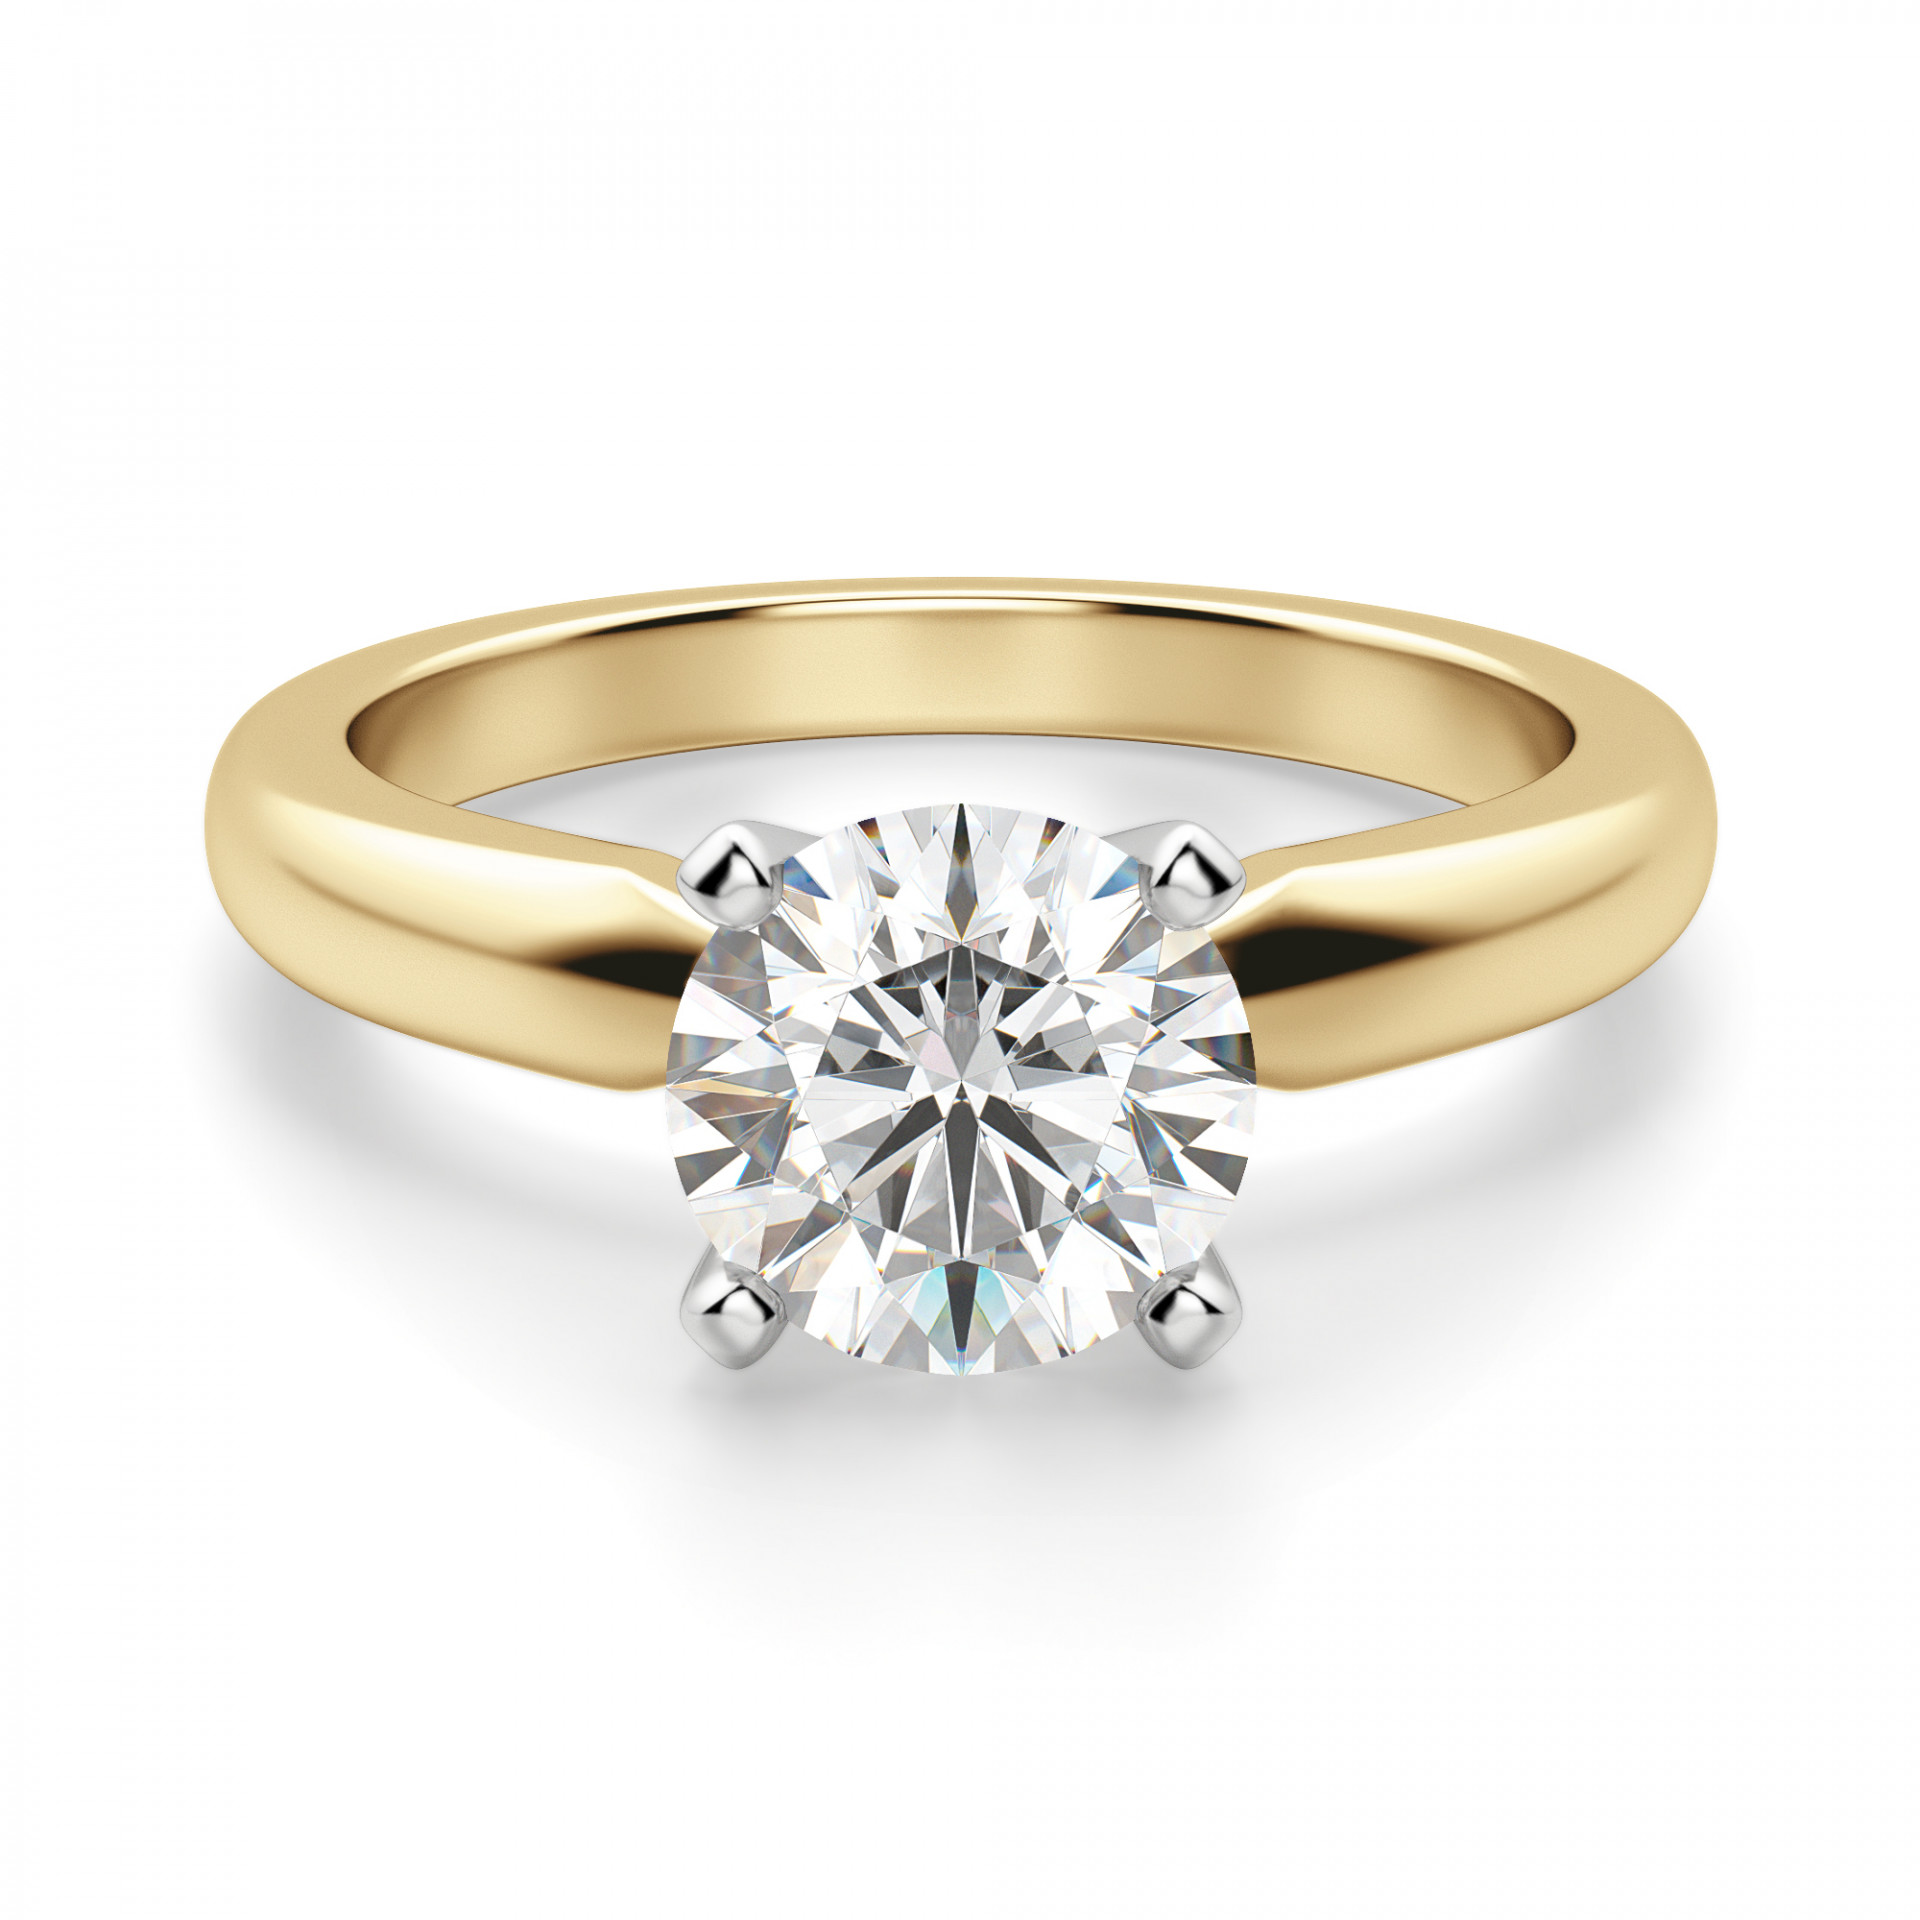 tiffany style round cut solitaire engagement ring. Black Bedroom Furniture Sets. Home Design Ideas